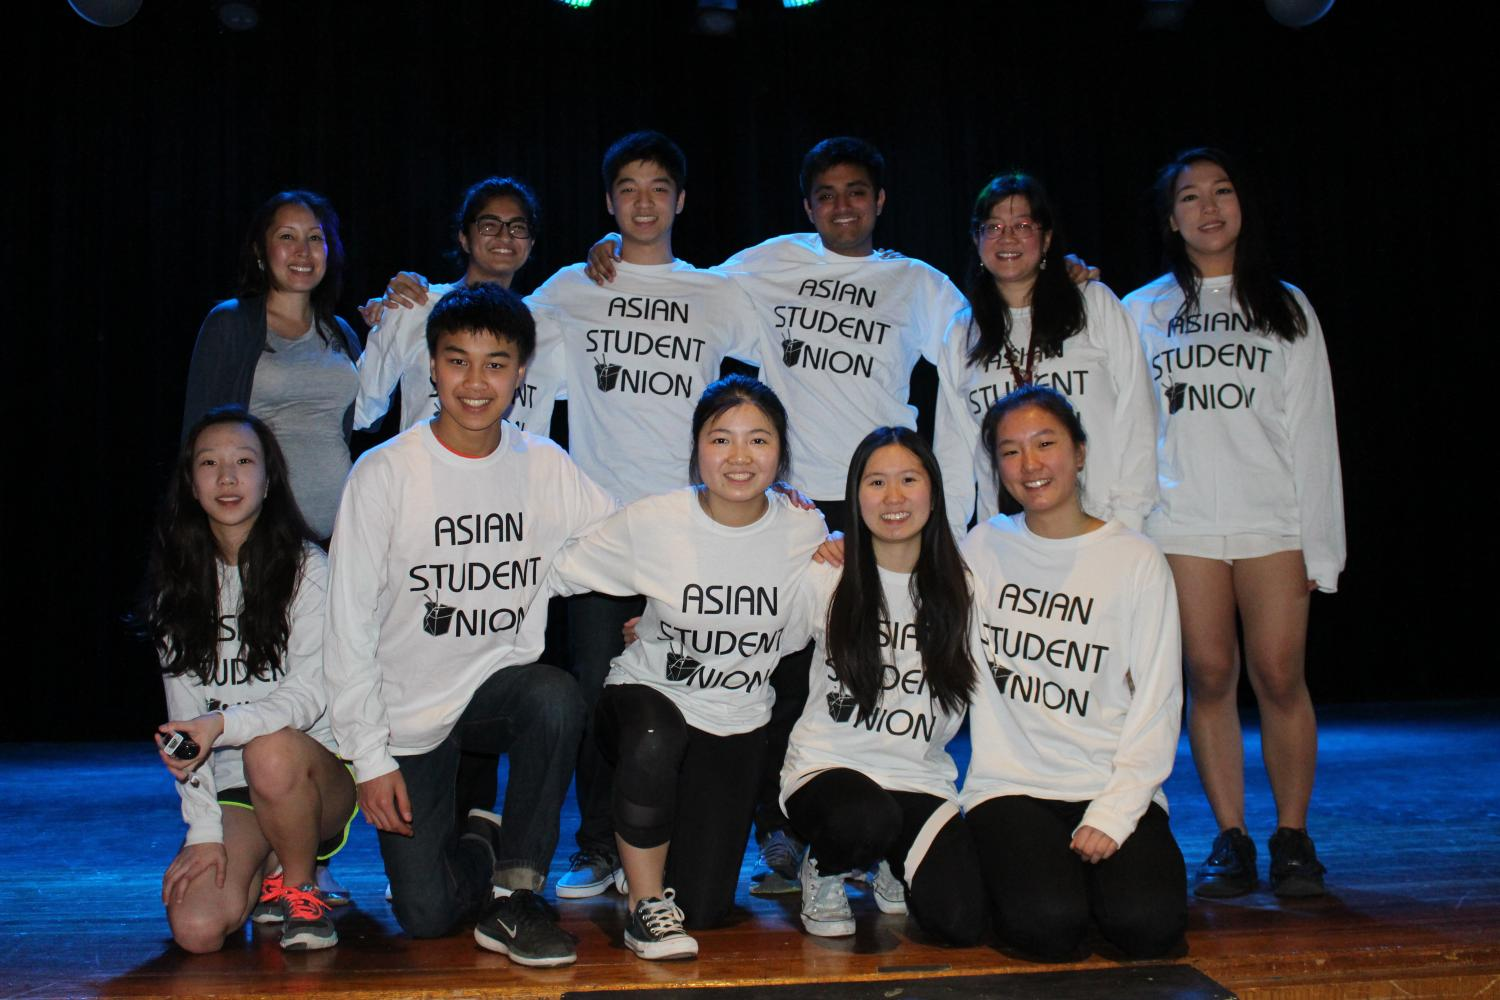 Asian+Student+Union+officers+and+advisers+on+stage+after+the+assembly+%28from+left+to+right%29.++Row+1%3A+Co-adviser+Kim+Dang%2C+Junior+Zoya+Tajuddin%2C+Senior+Alex+Chang%2C+Senior+Kabir+Gupta%2C+Co-adviser+Angela+Lee%2C+Senior+Margaret+Yang.+Row+2%3A+Senior+Sarah+Yi%2C+Freshman+Aidan+Chen%2C+Junior+Grace+Wang%2C+Senior+Angel+Zhao%2C+Senior+Esther+Tzau.+PHOTO%2FKaitlyn+Meslin